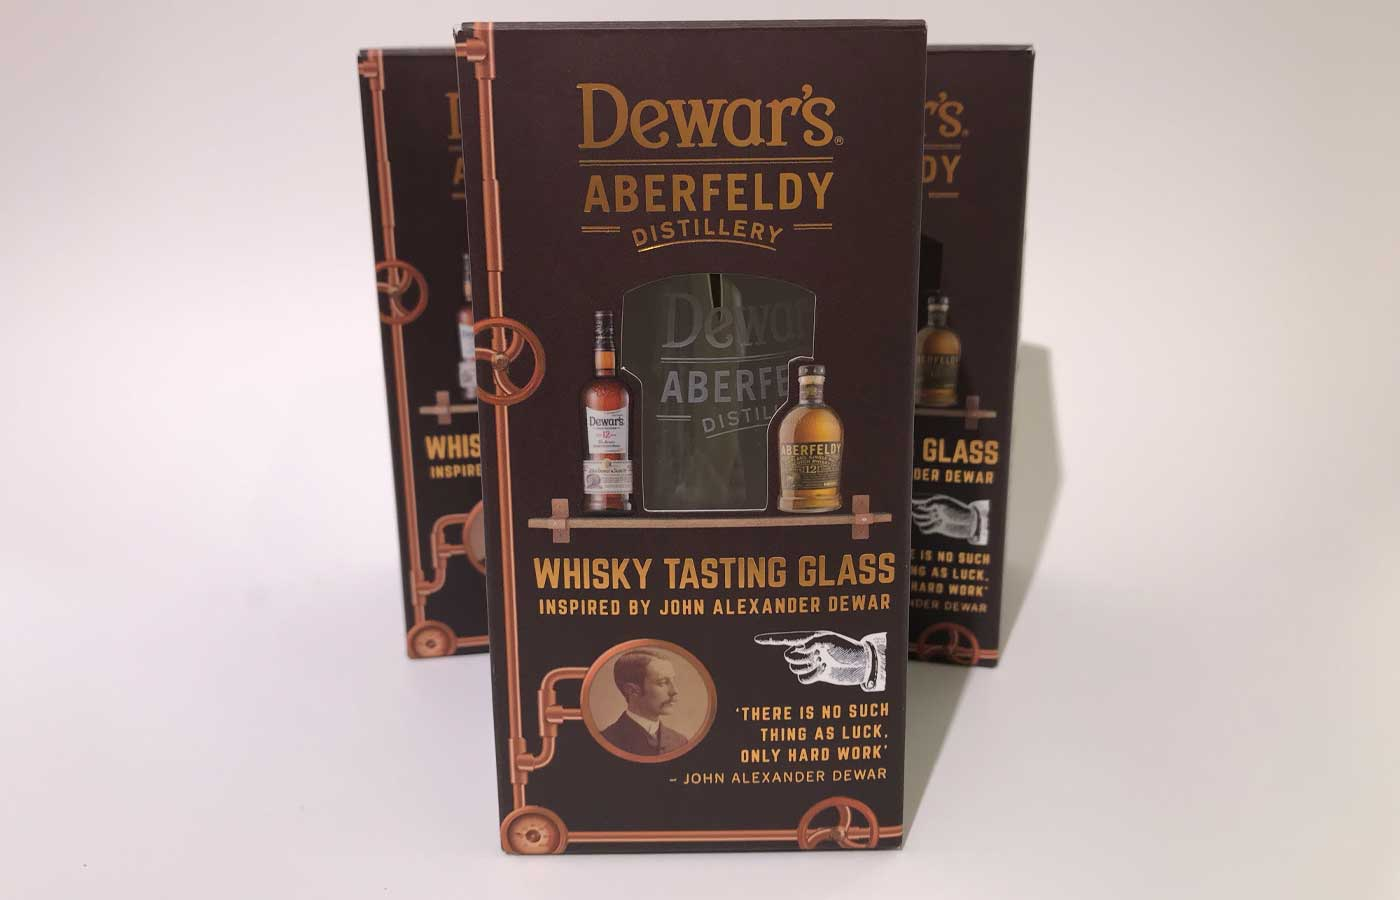 Dewars Tasting Glass - Structural packaging